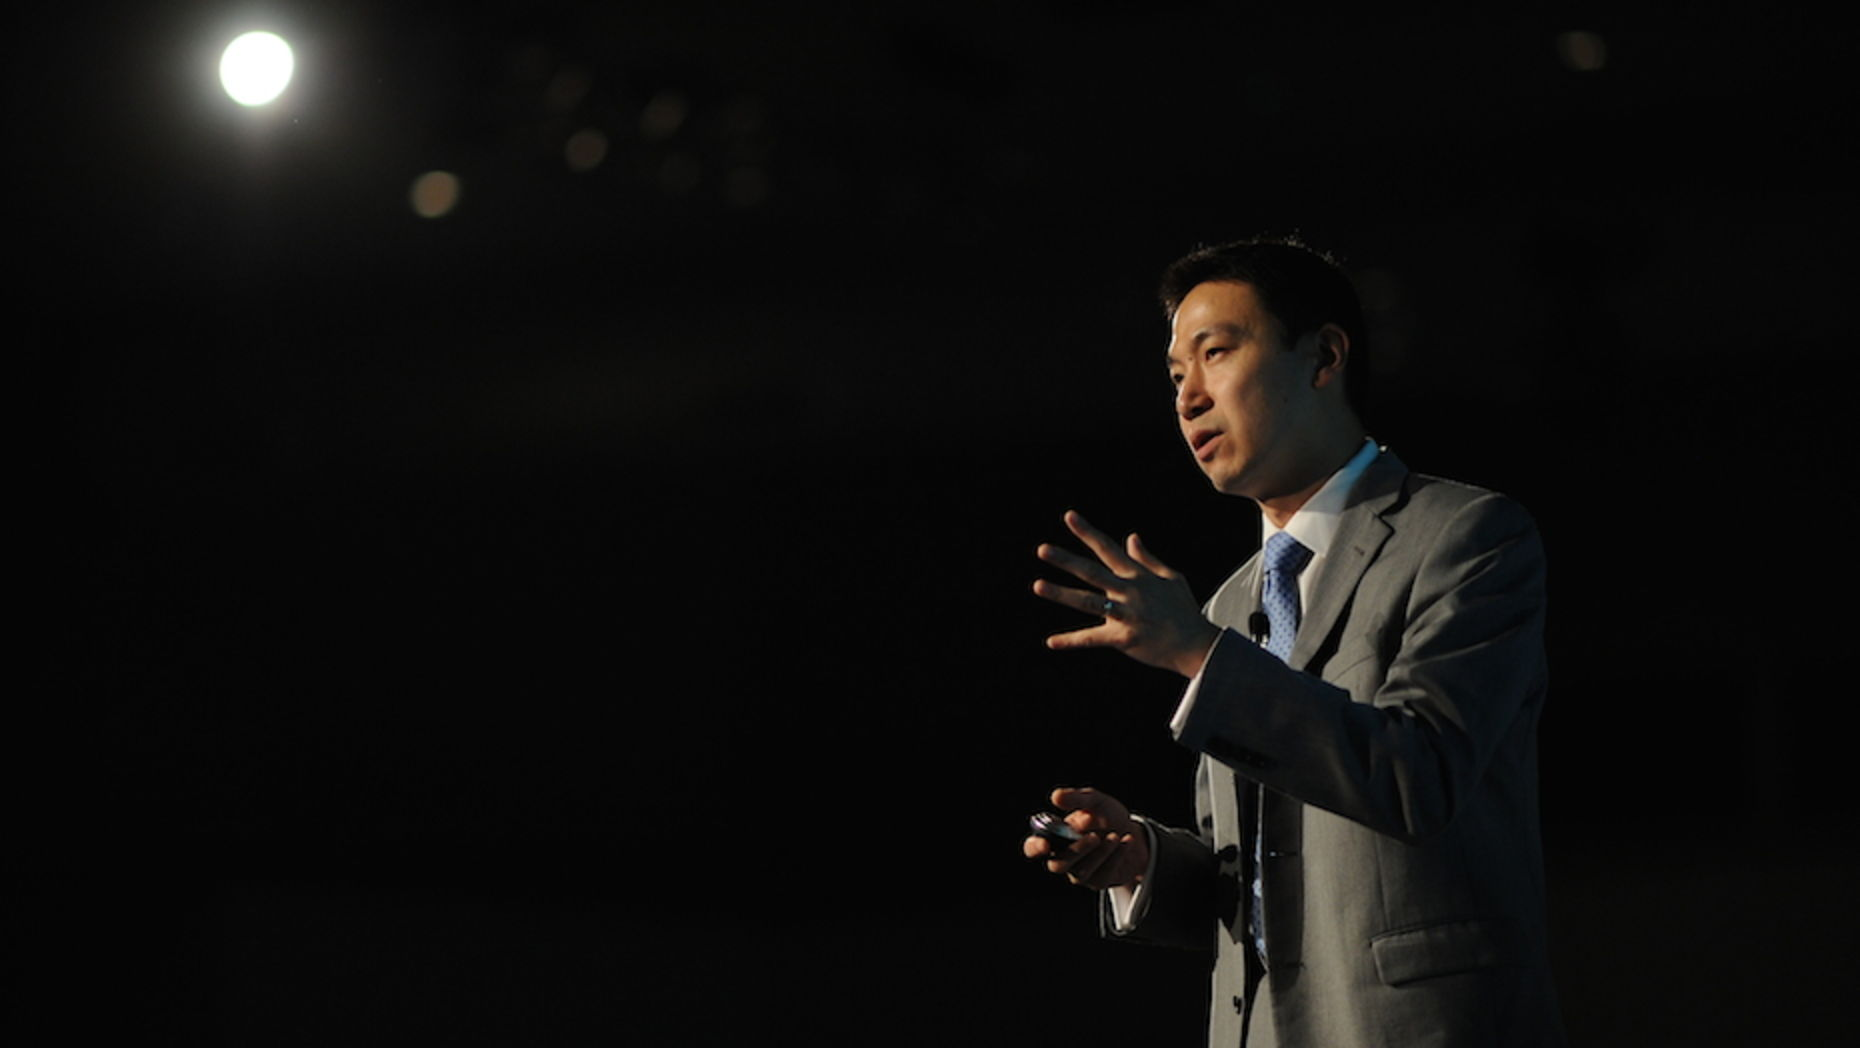 Salesforce.com Chief Operating Officer George Hu. Photo by Jakub Mosur.